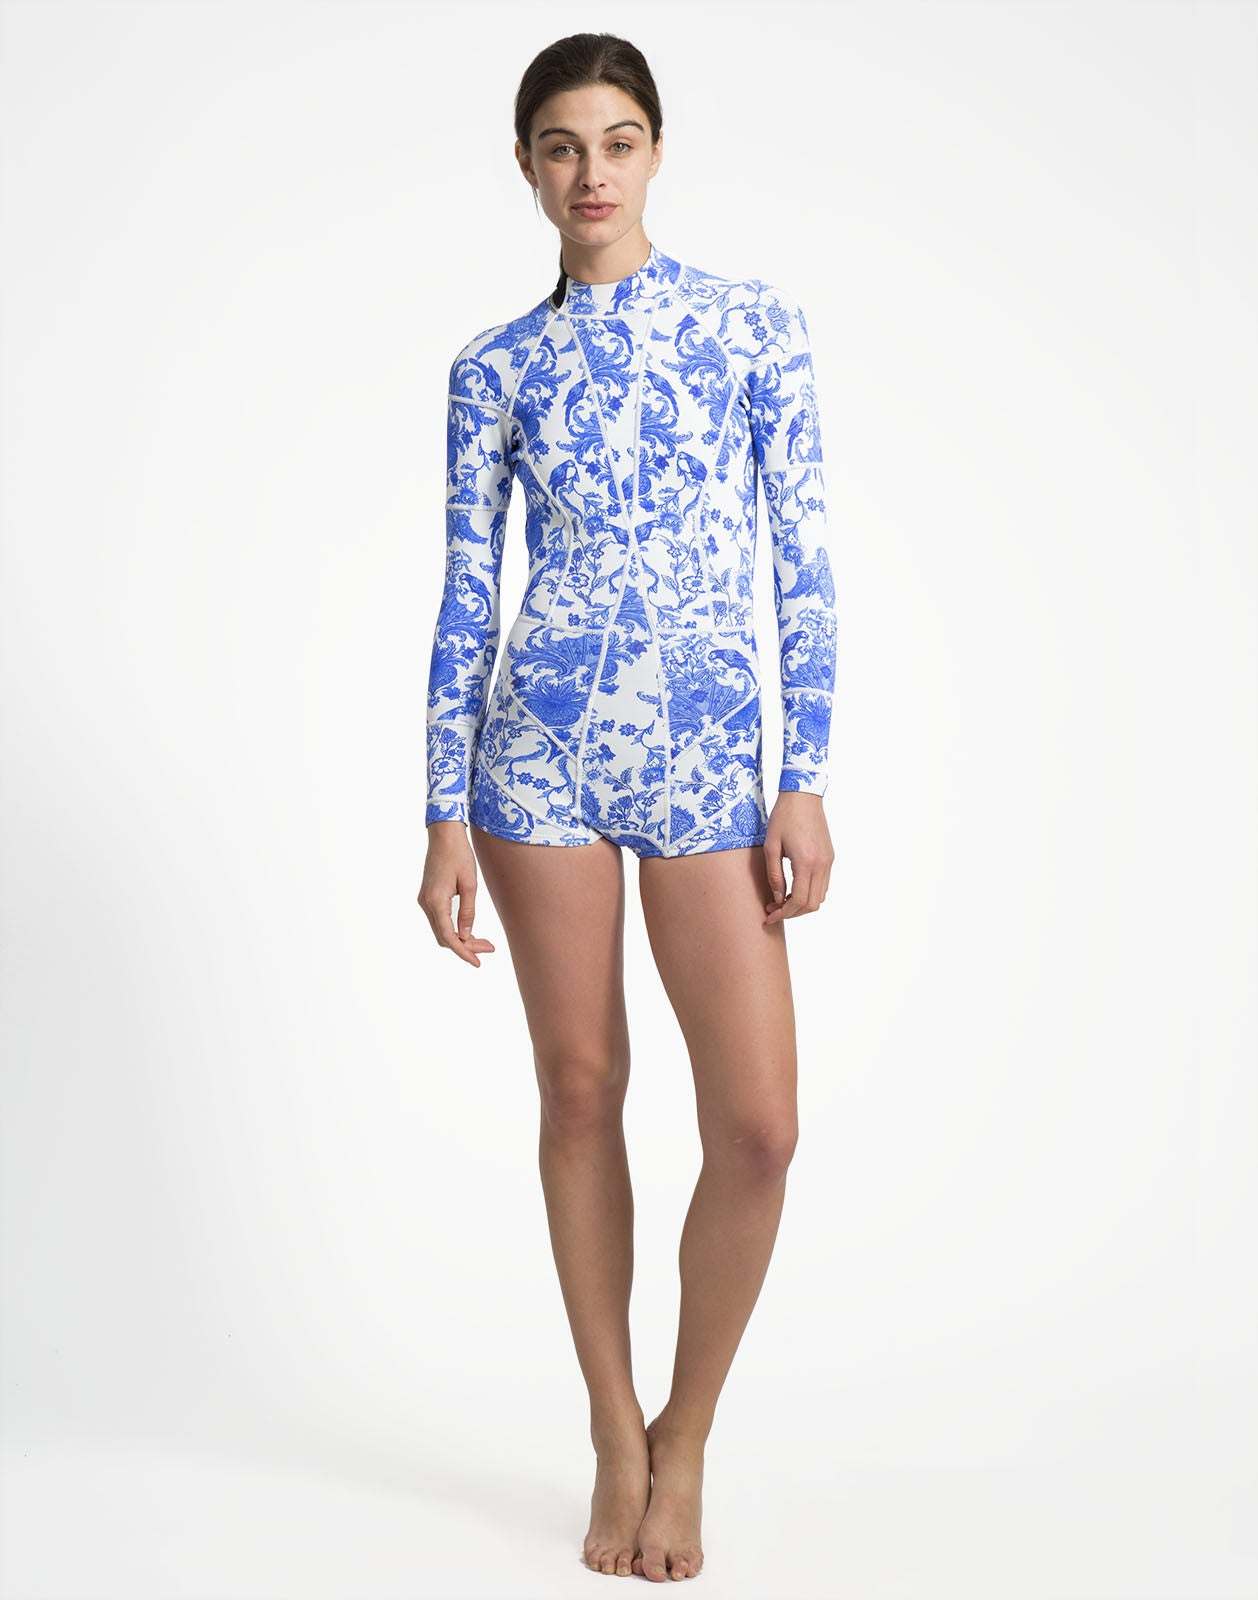 Blue China Print Wetsuit